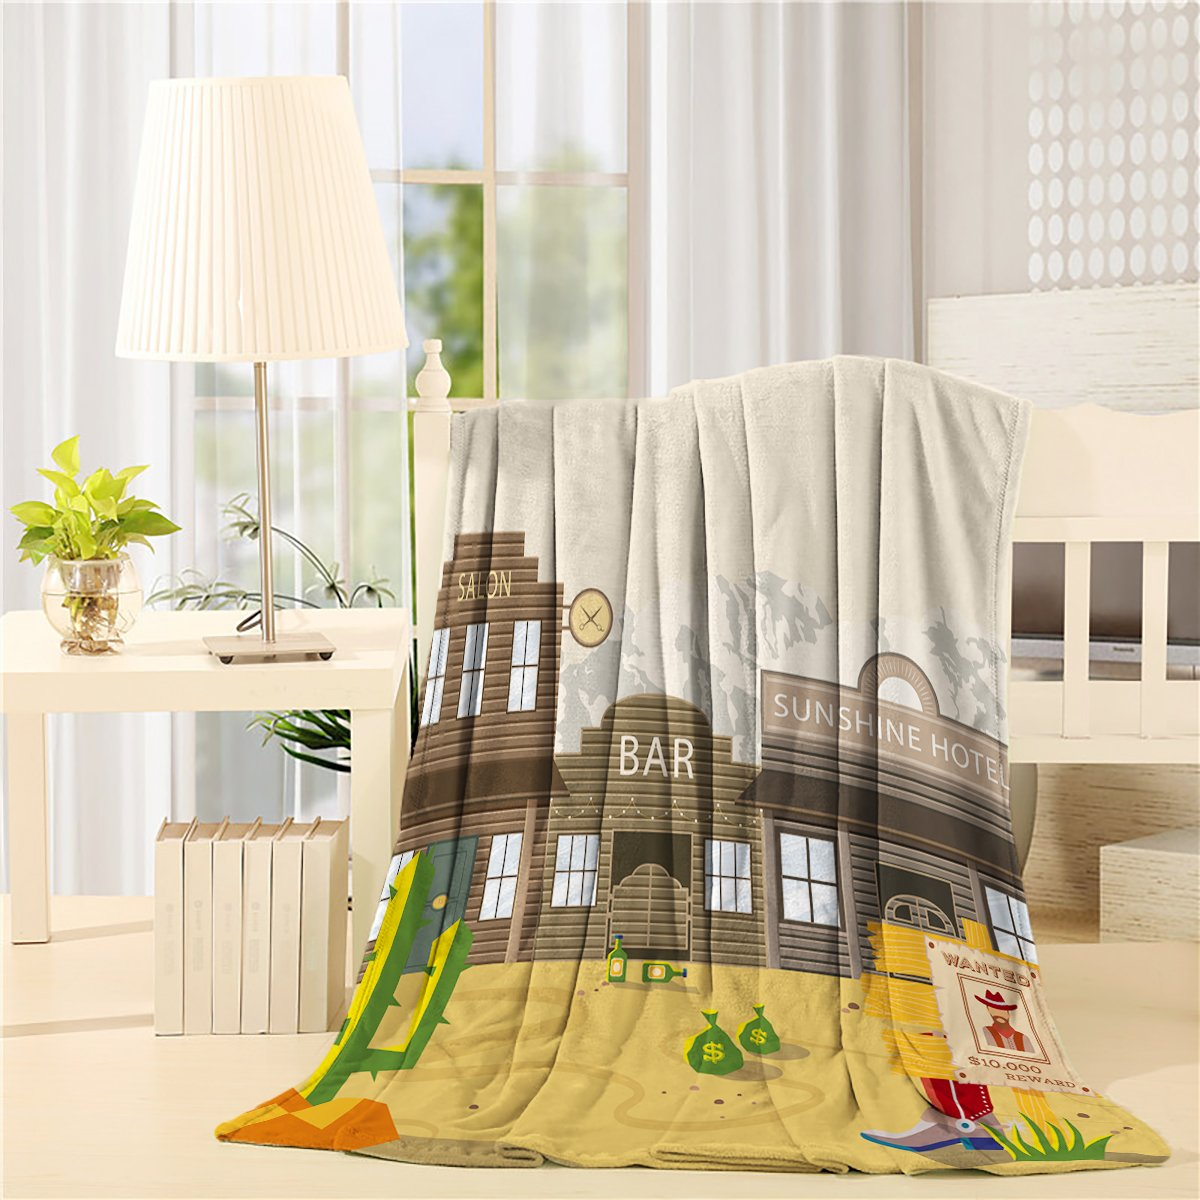 COLORSUM Flannel Fleece Throw Blanket 40 x 50 inch Printed Soft Plush Blanket for Bedroom Living Room Couch Bed Sofa - Desert Salon Bar Hotel with Cactus Beverage Bottle Leather Boots